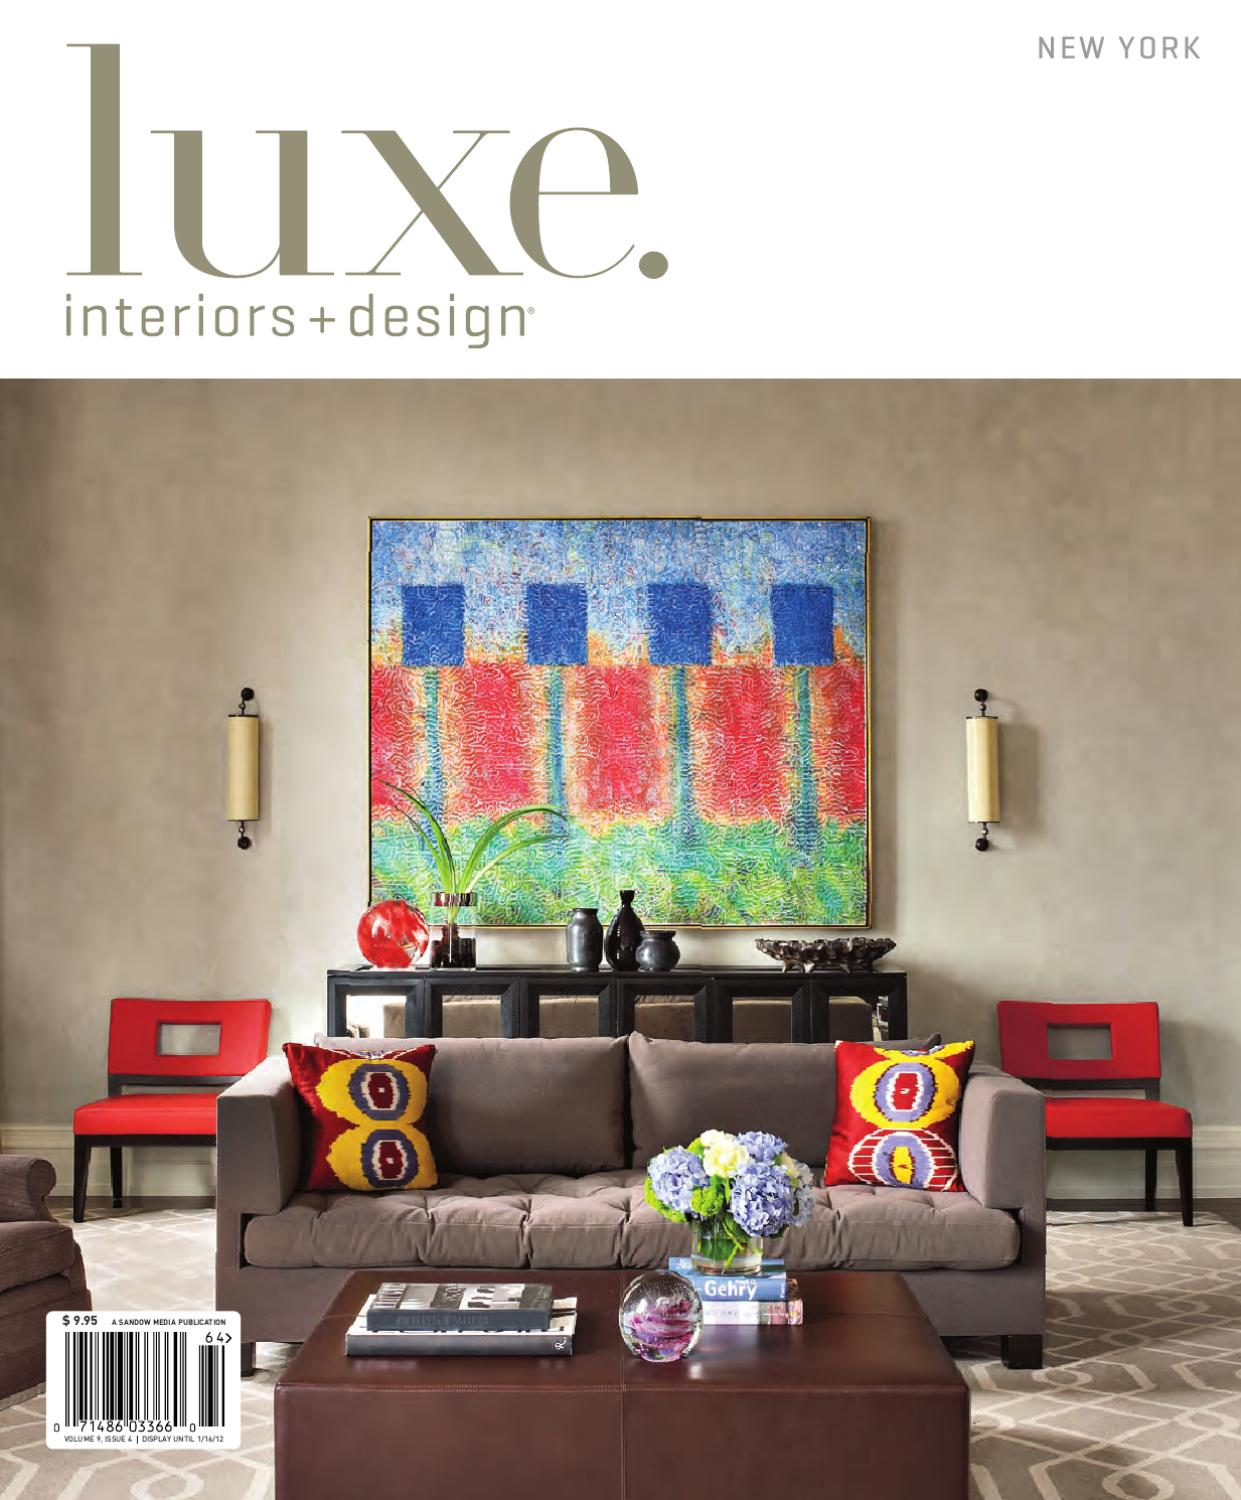 Interio Sofa Marilyn Luxe Interiors Design Ny 3 By Sandow Media Issuu